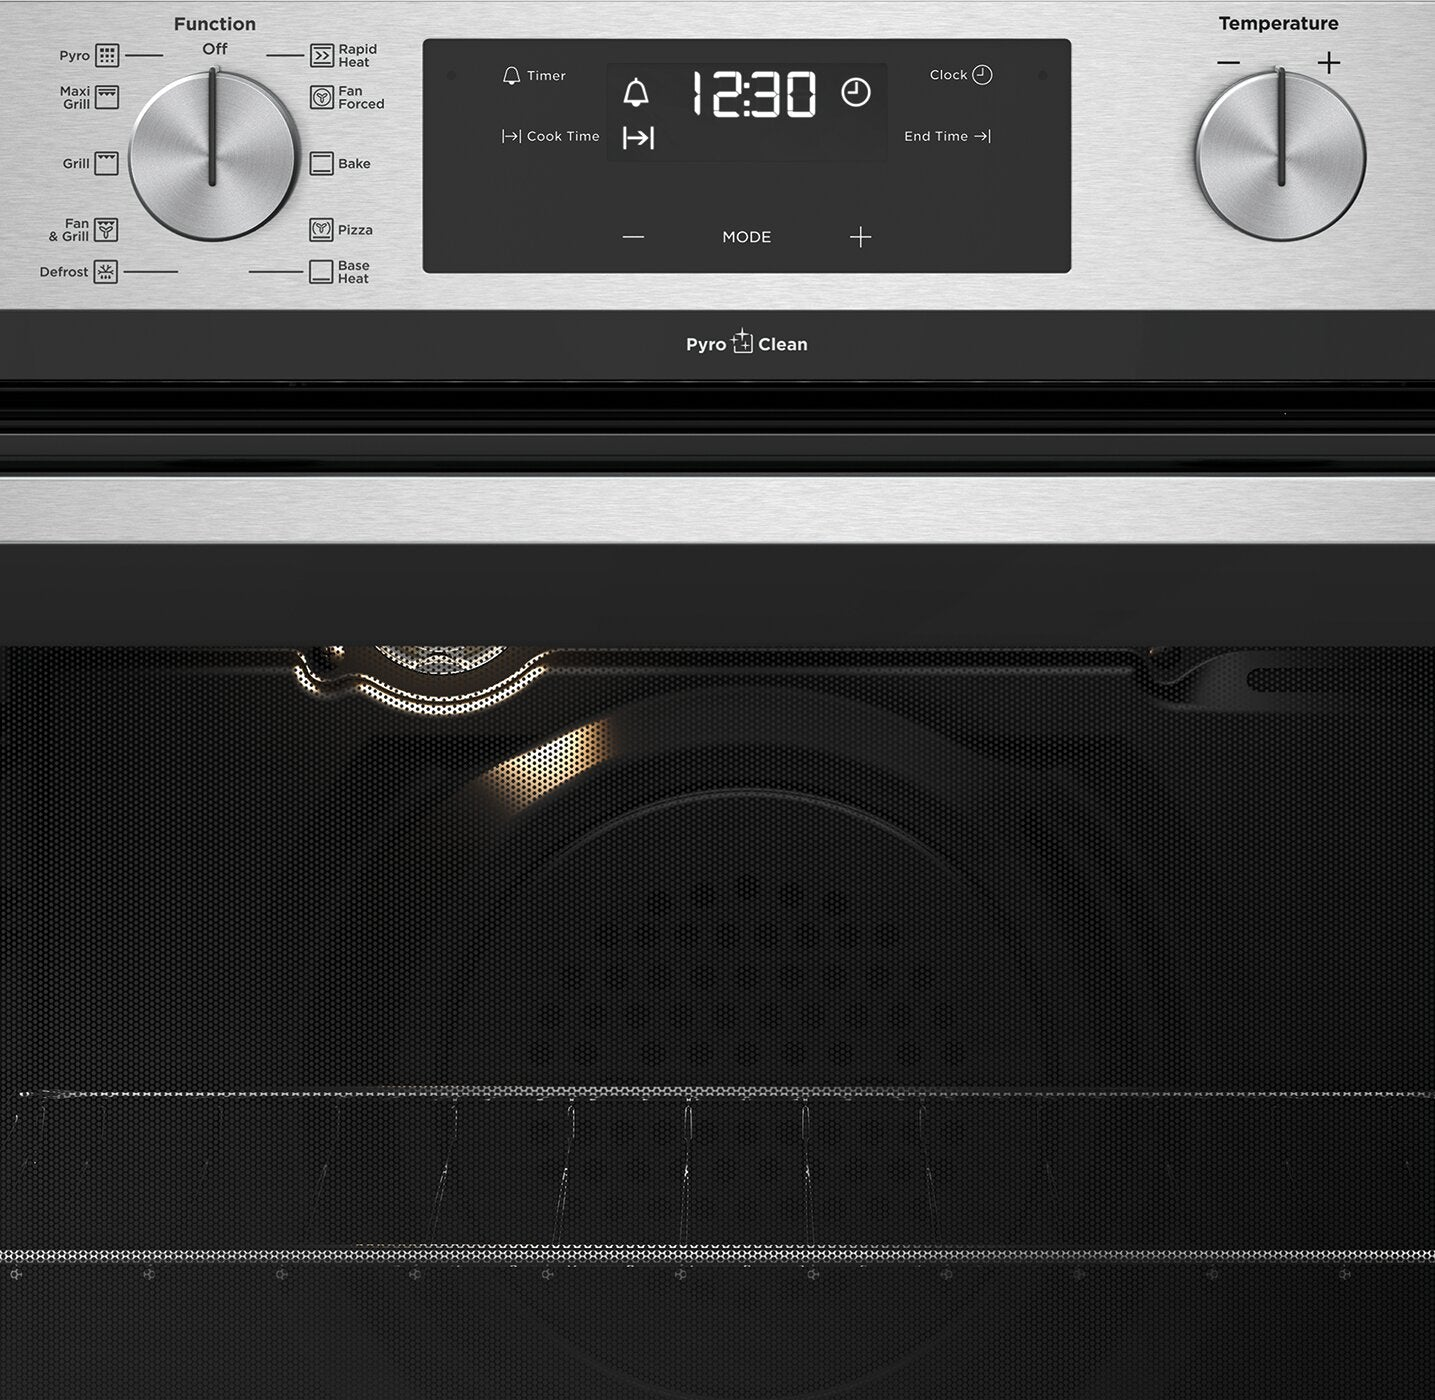 Westinghouse 60cm Pyrolytic Built-In Oven - Brisbane Home Appliances